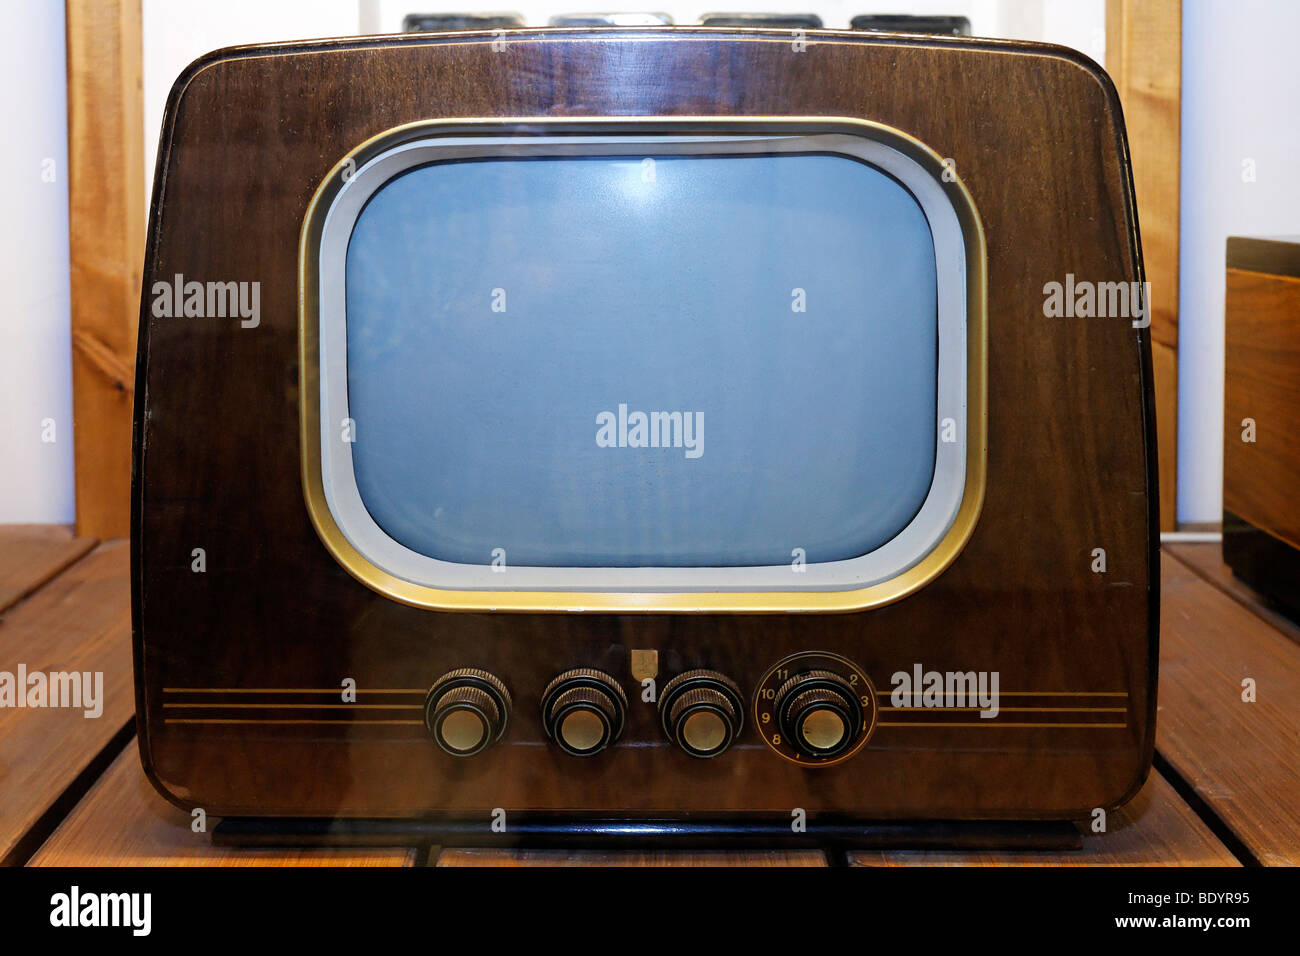 small black and white tv from the 50s philips brand power and life